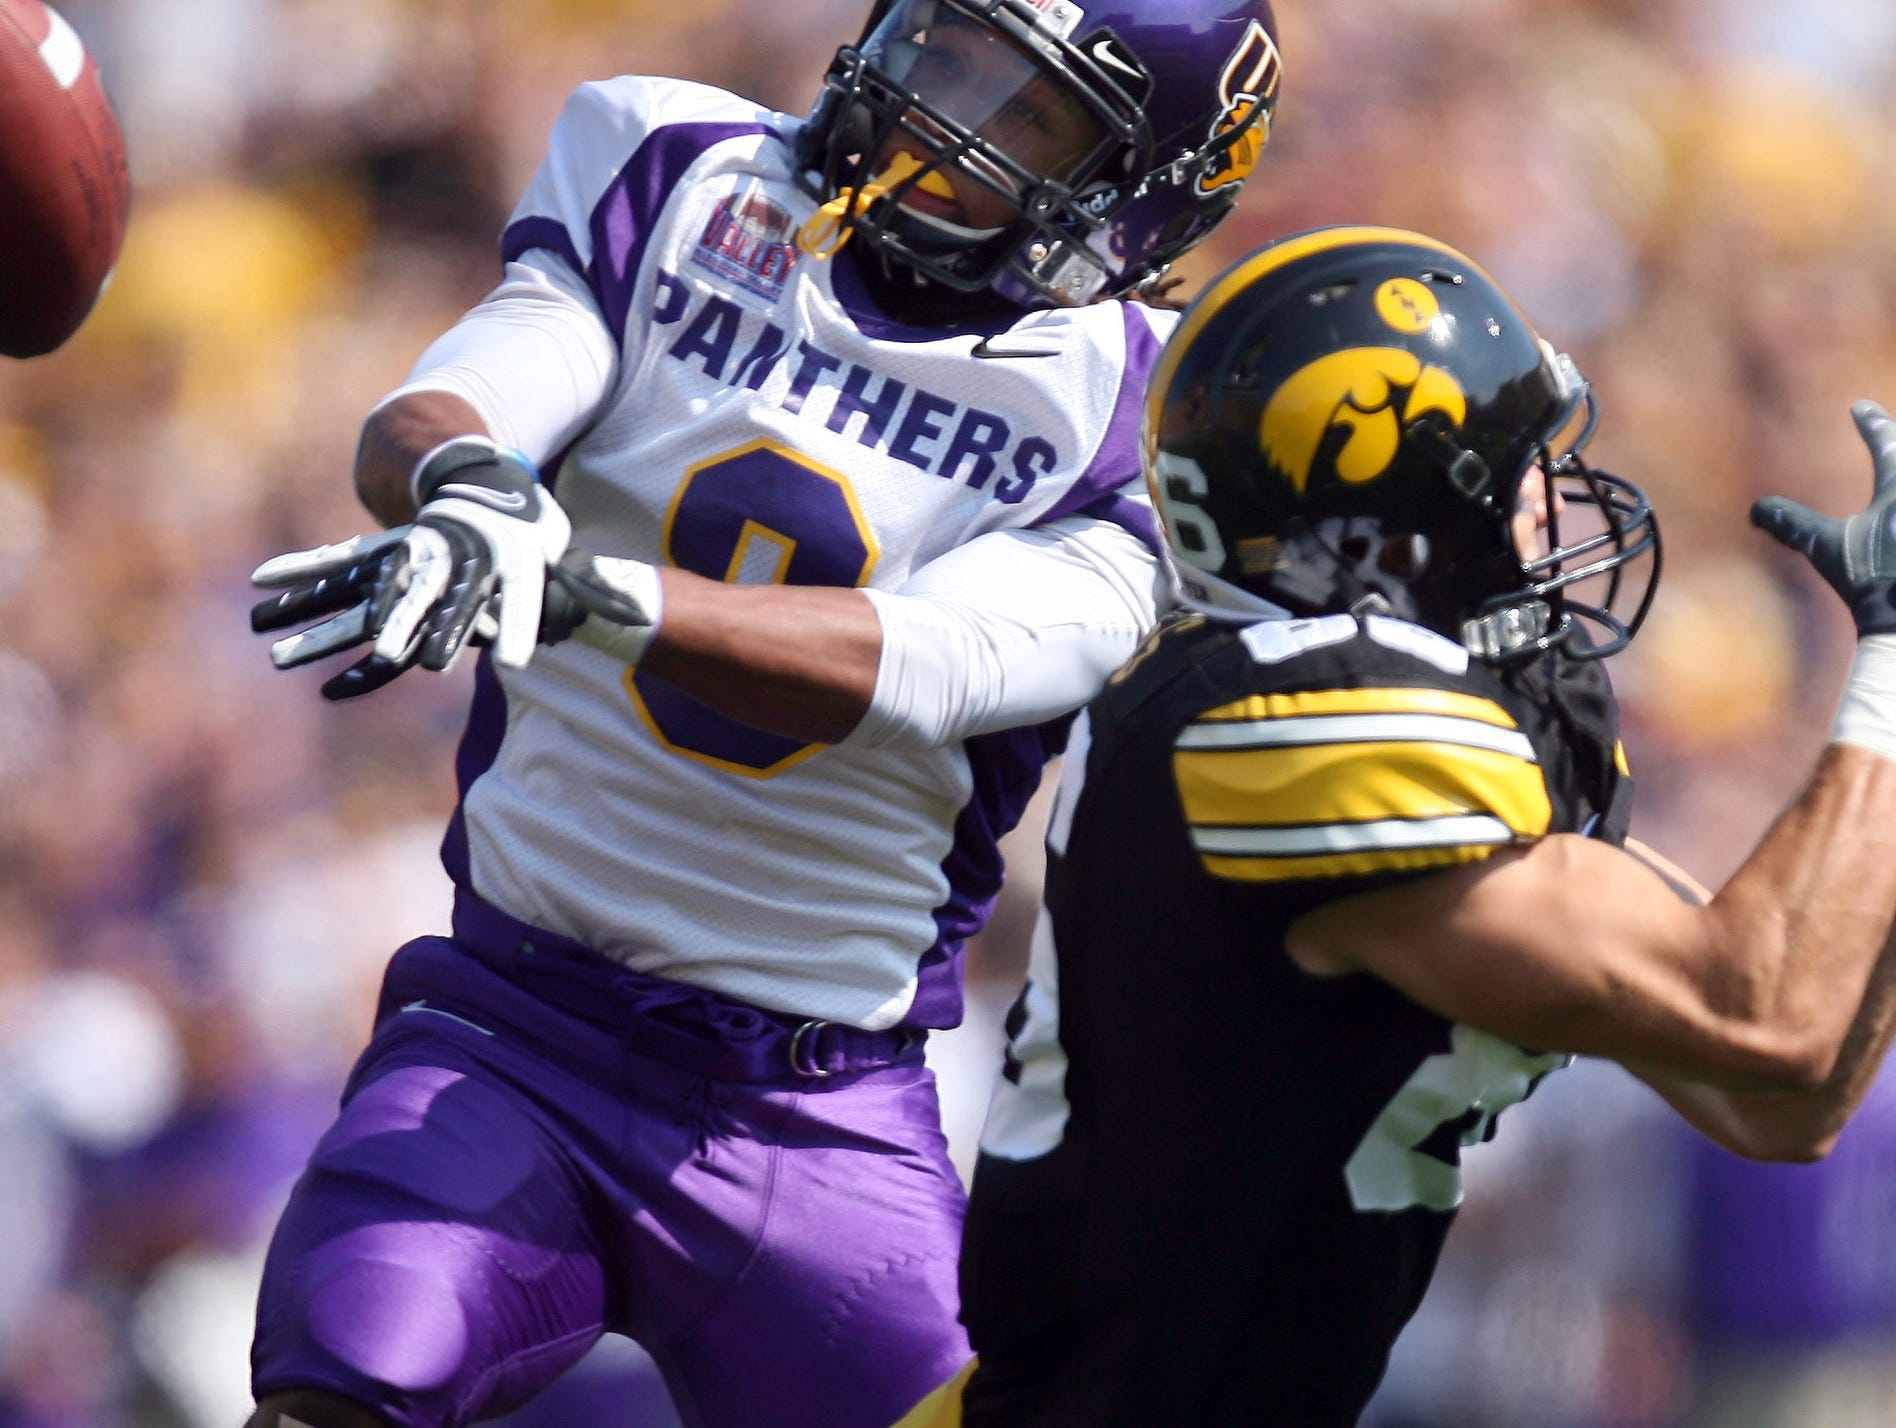 s0906iowafb - shot 09/04/09 Iowa City, IA.  Christopher Gannon/The Register  -- Iowa vs. Northern Iowa --   Northern Iowa cornerback Andre Martin (8) knocks a pass away from Iowa wide receiver Trey Stross (86) in the first quarter Saturday in Iowa City.  (Christopher Gannon/The Des Moines Register)